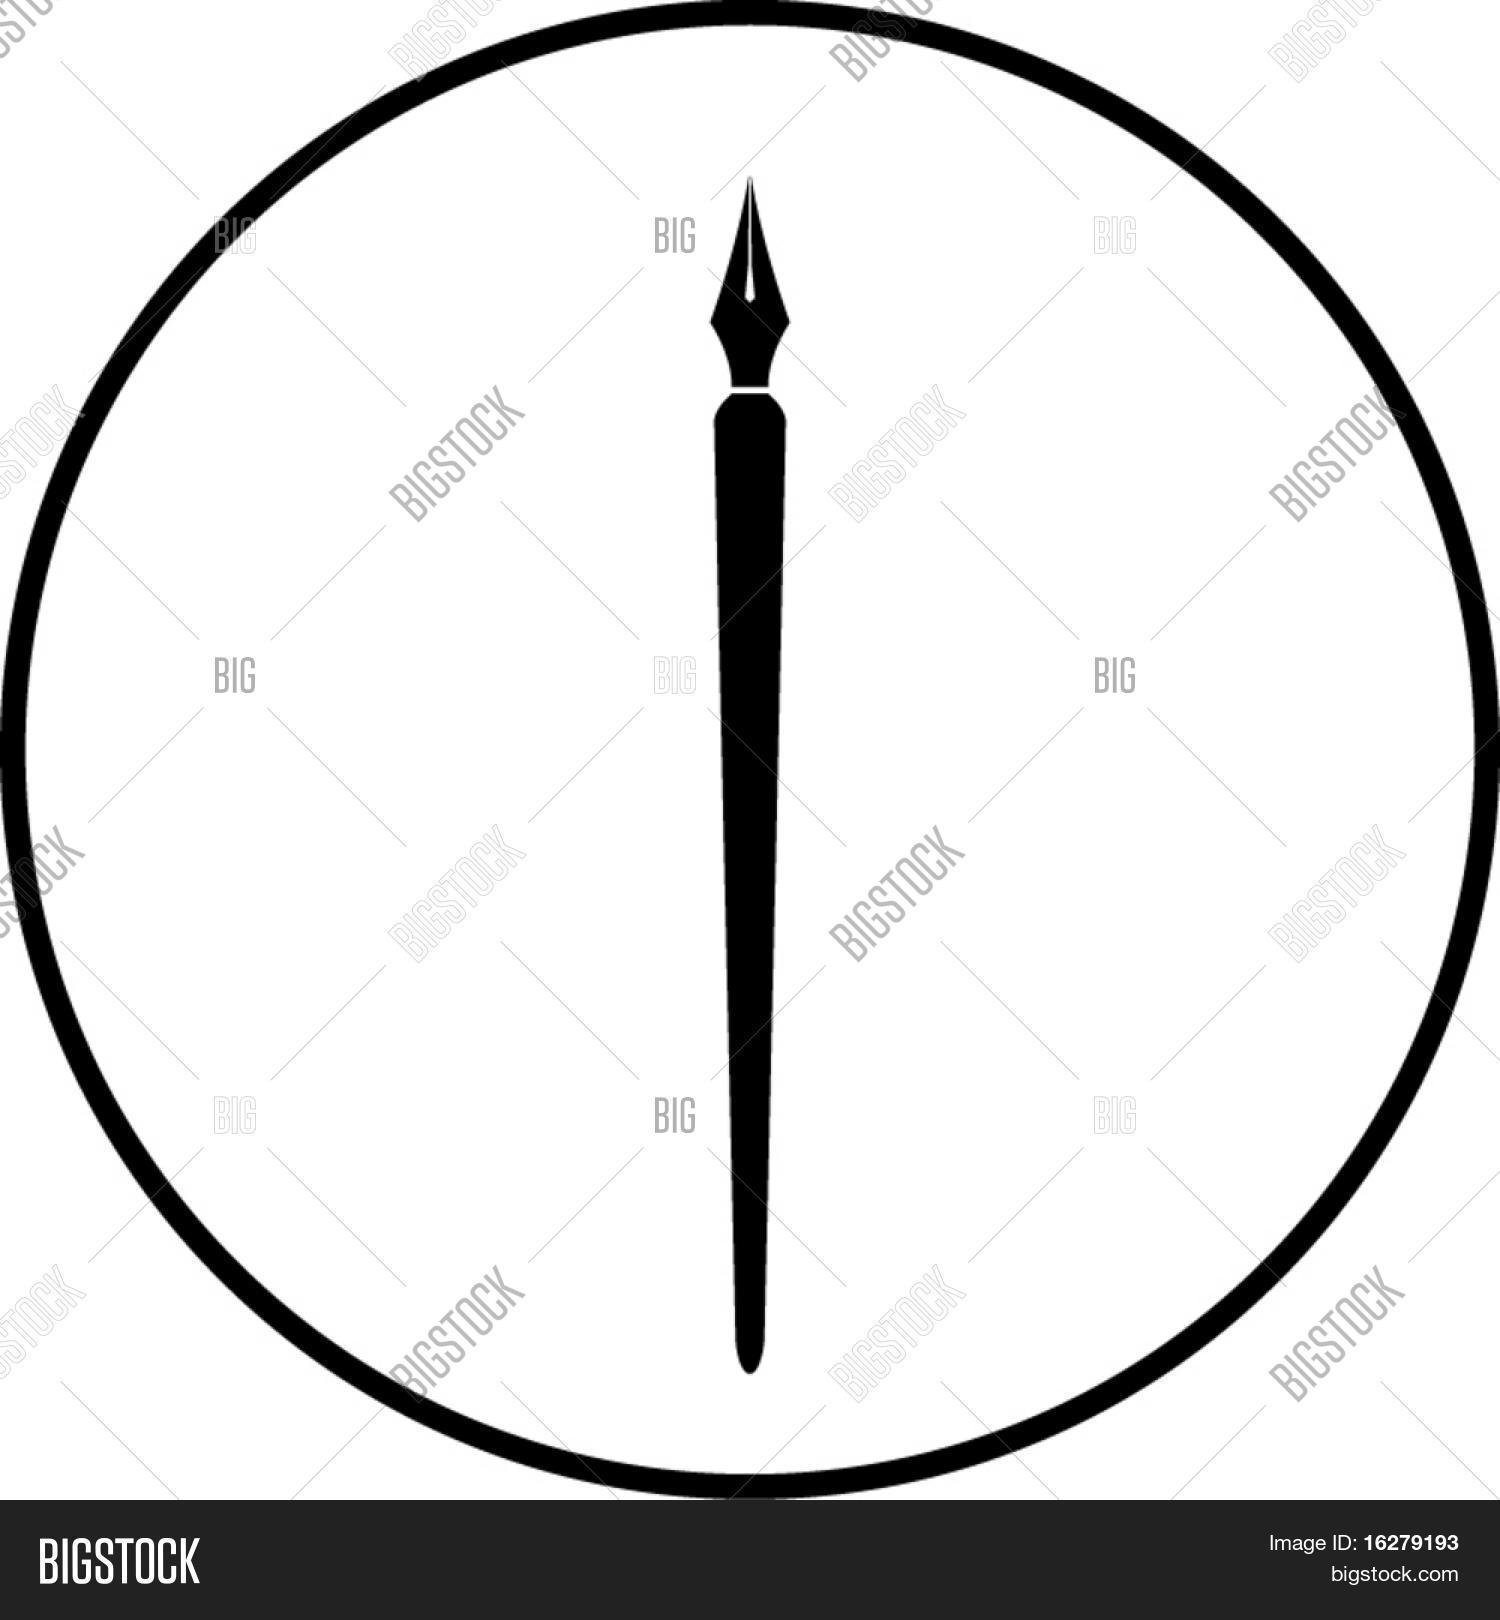 Pen Symbol Vector & Photo (Free Trial) | Bigstock